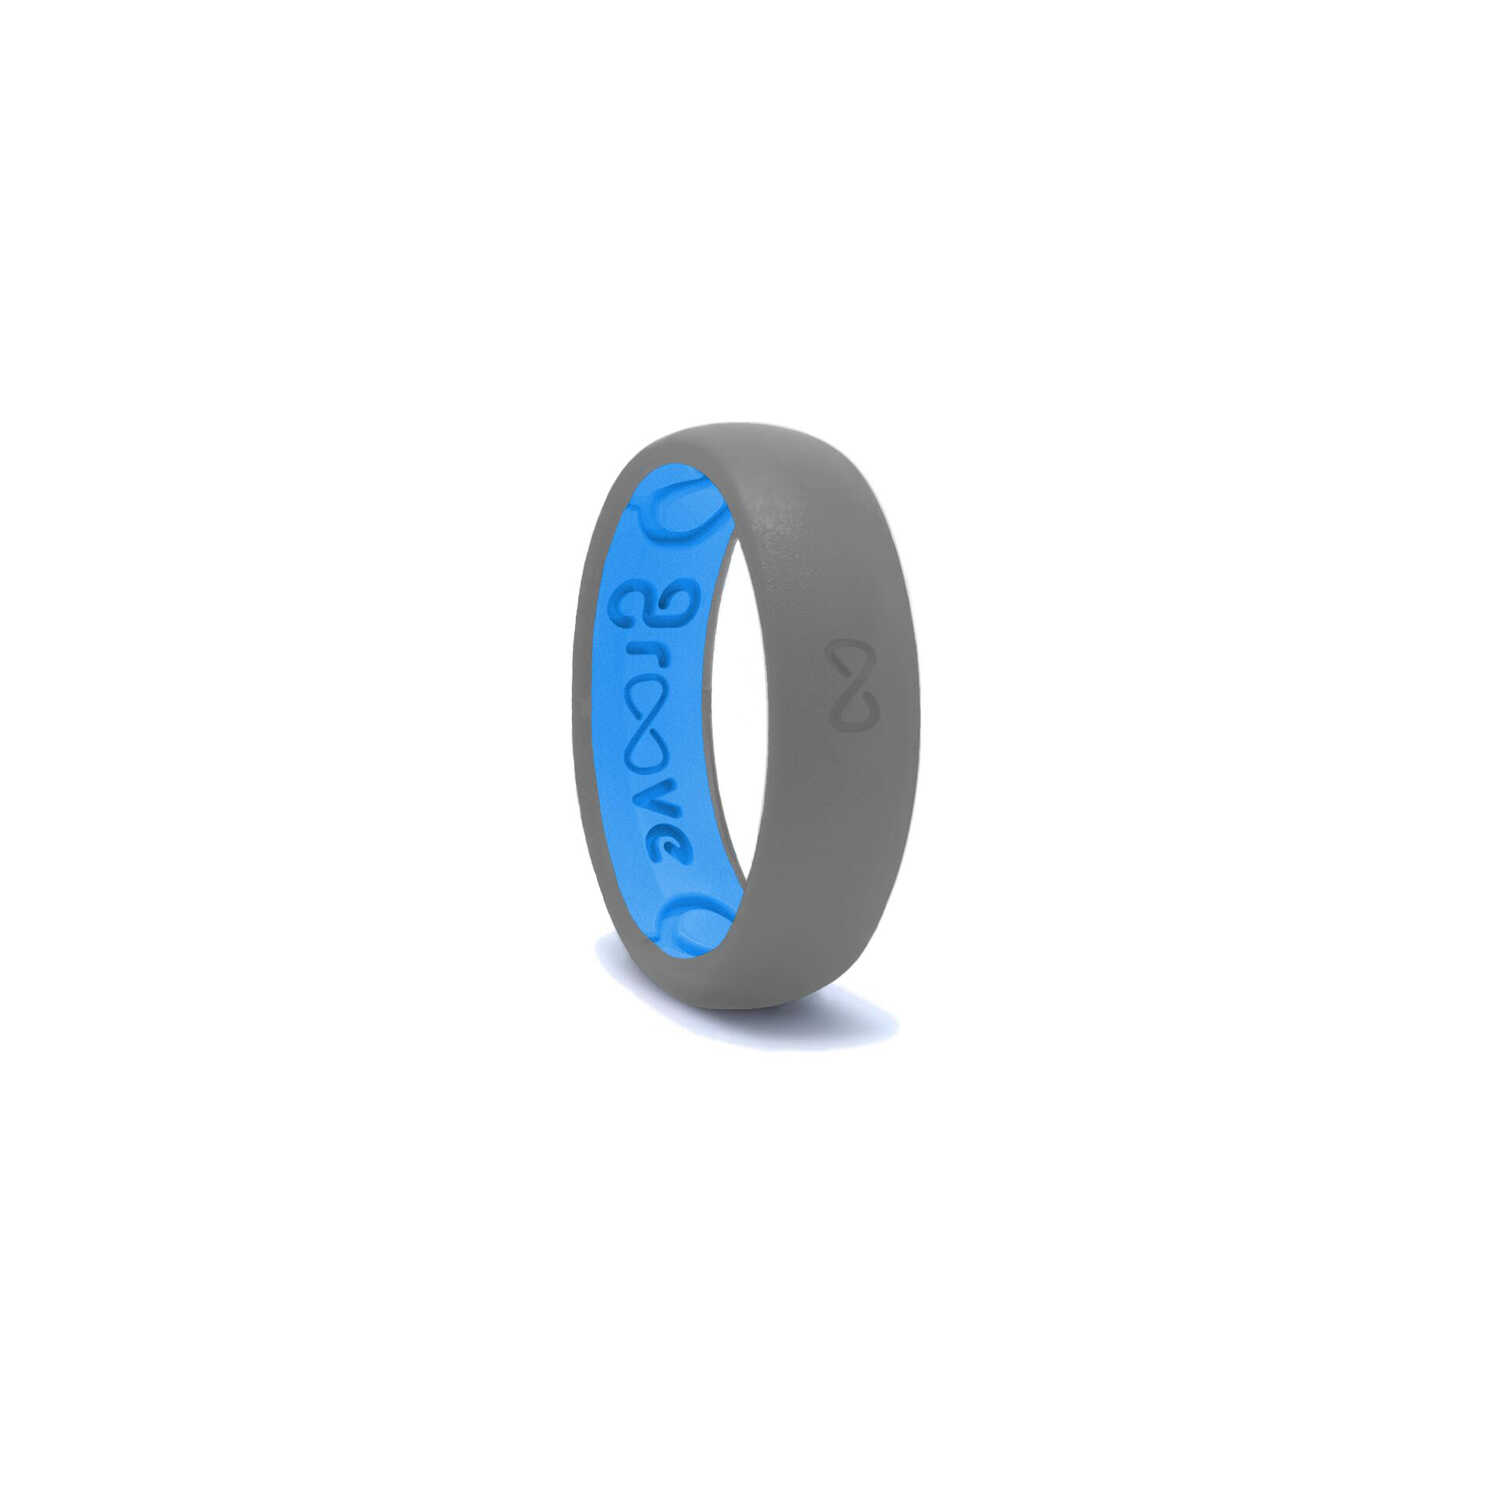 Groove Life  Unisex  Round  Storm Gray/Blue  Silicone  Water Resistant Wedding Band